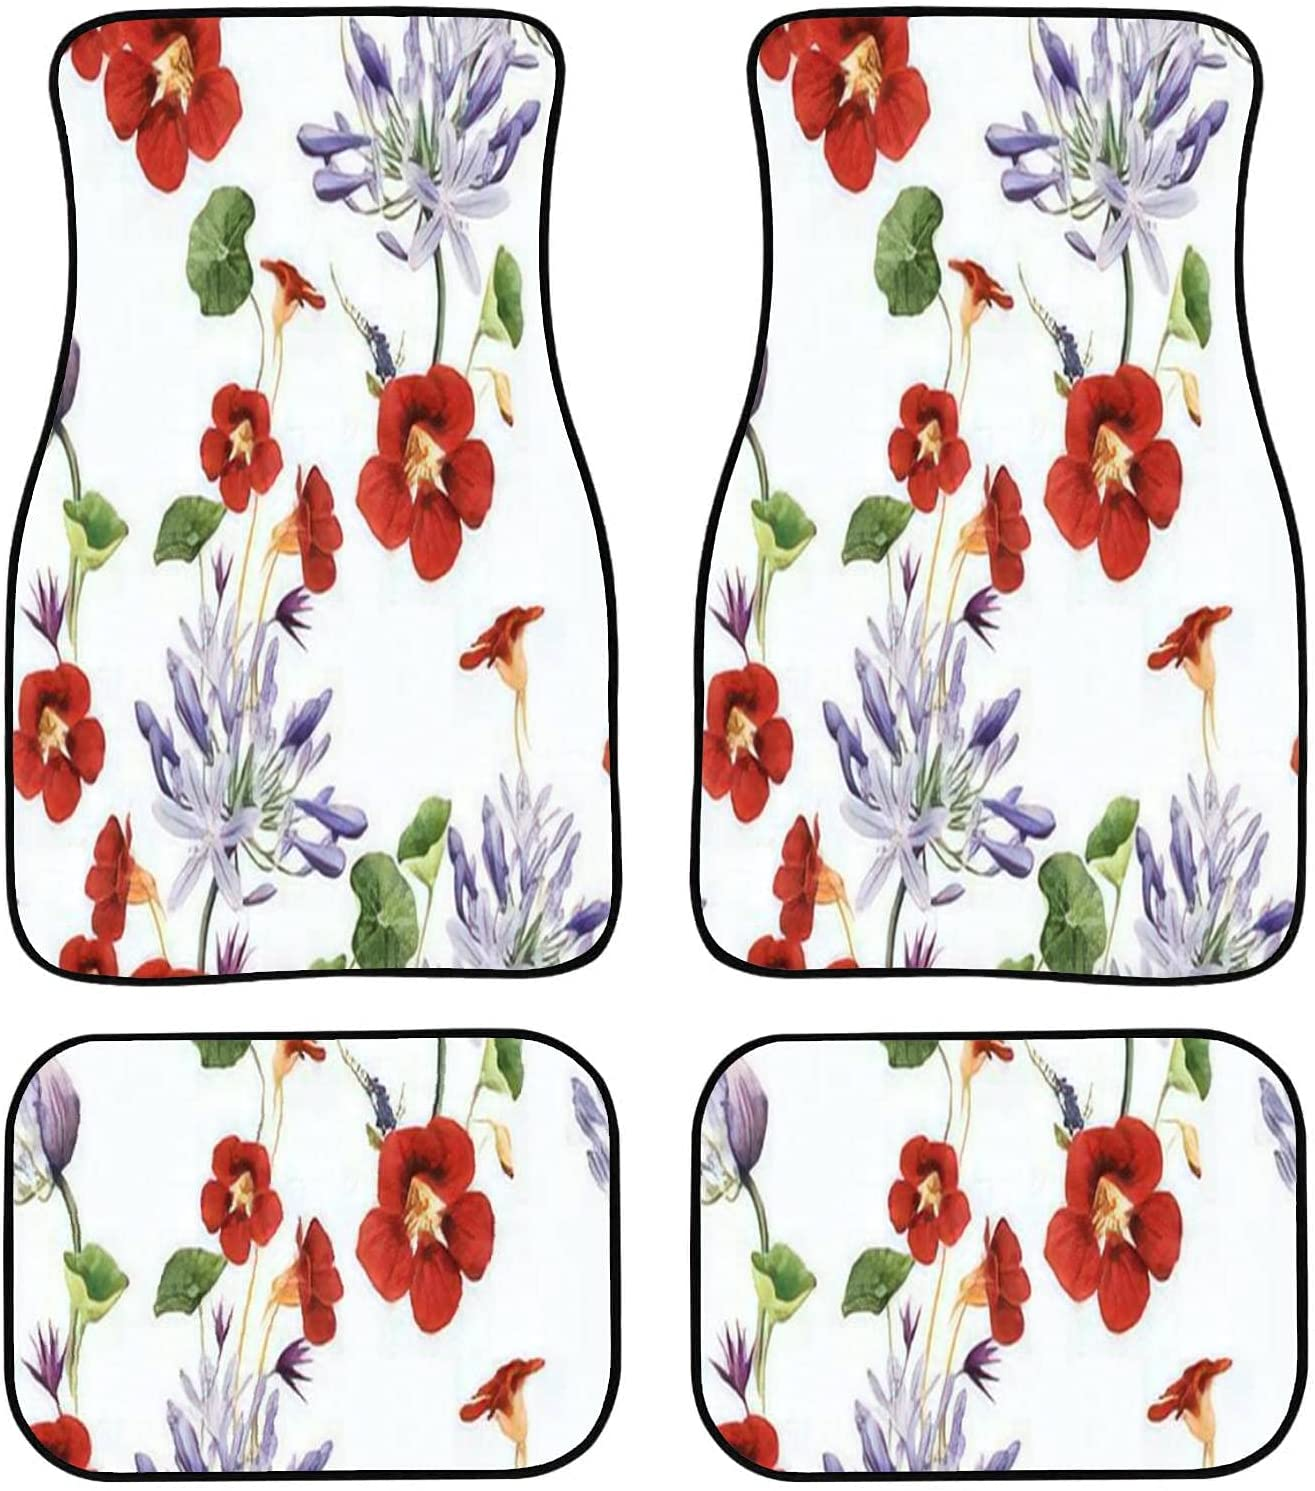 OBIEORNNCFUJ Car Floor Mats Department store - Sales of SALE items from new works Floral Flowe Seamless Pattern with